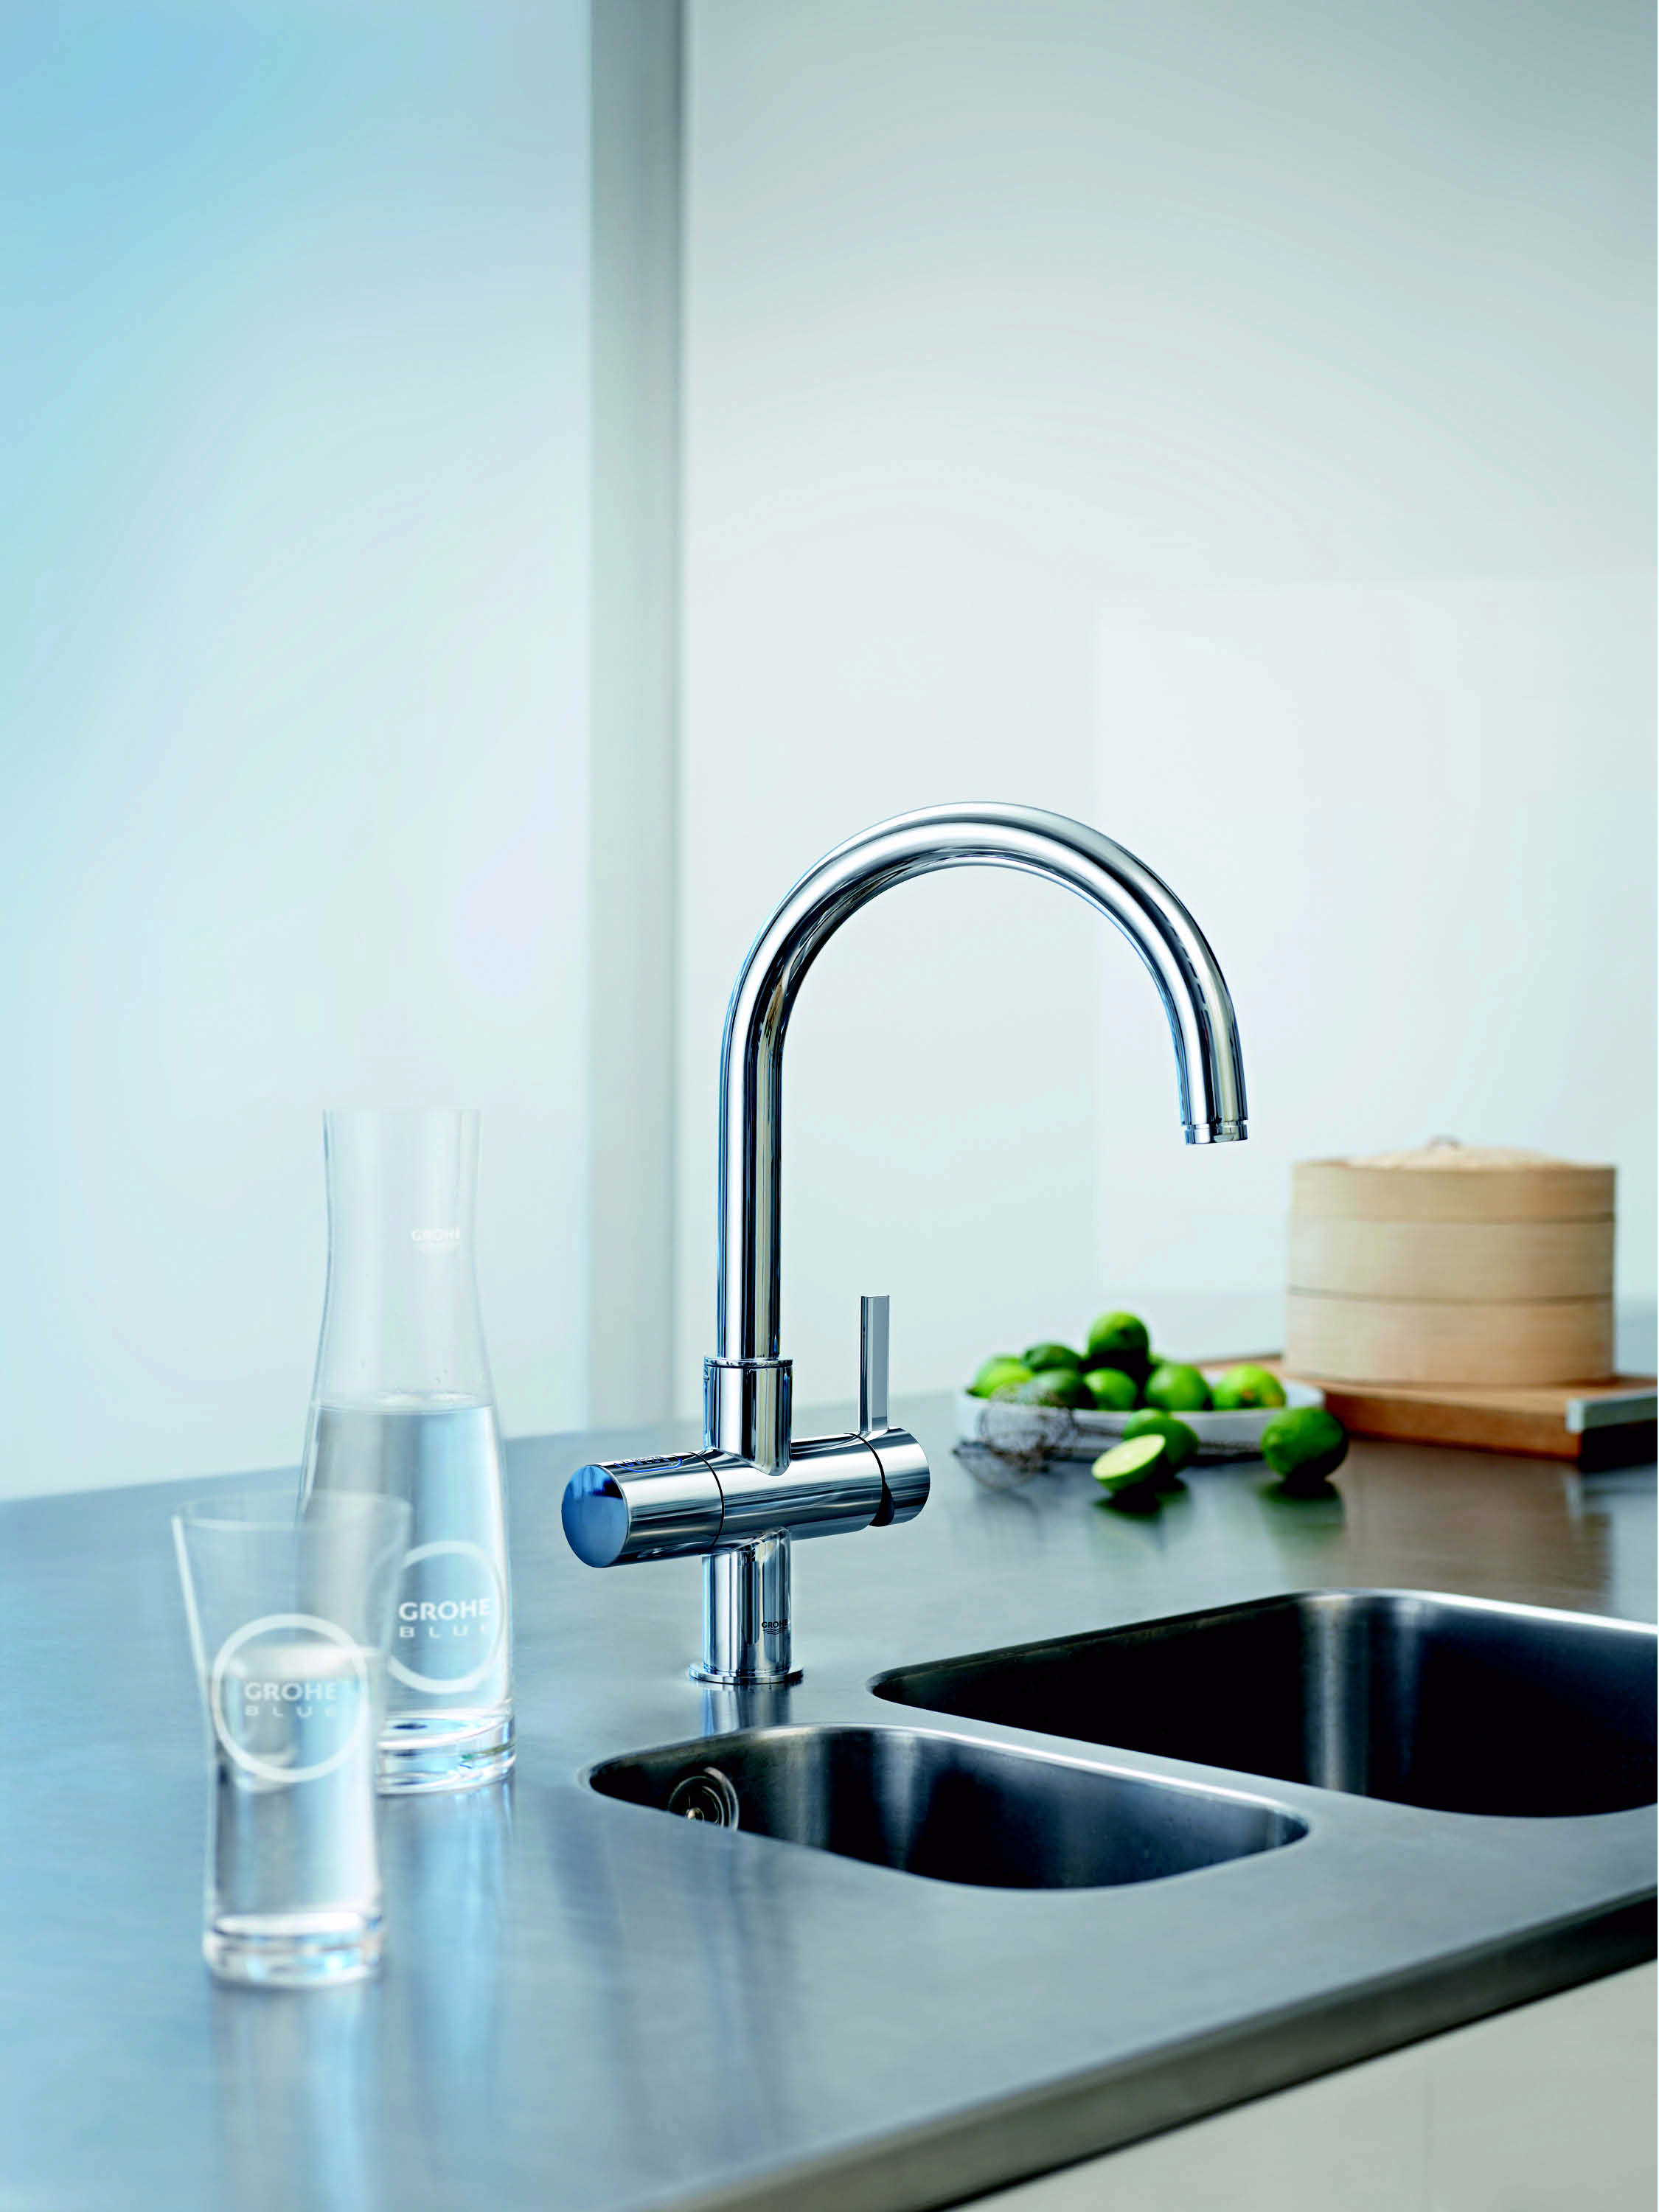 Blue Faucet by grohe faucets on marble countertop with double bowl sink for kitchen decor ideas